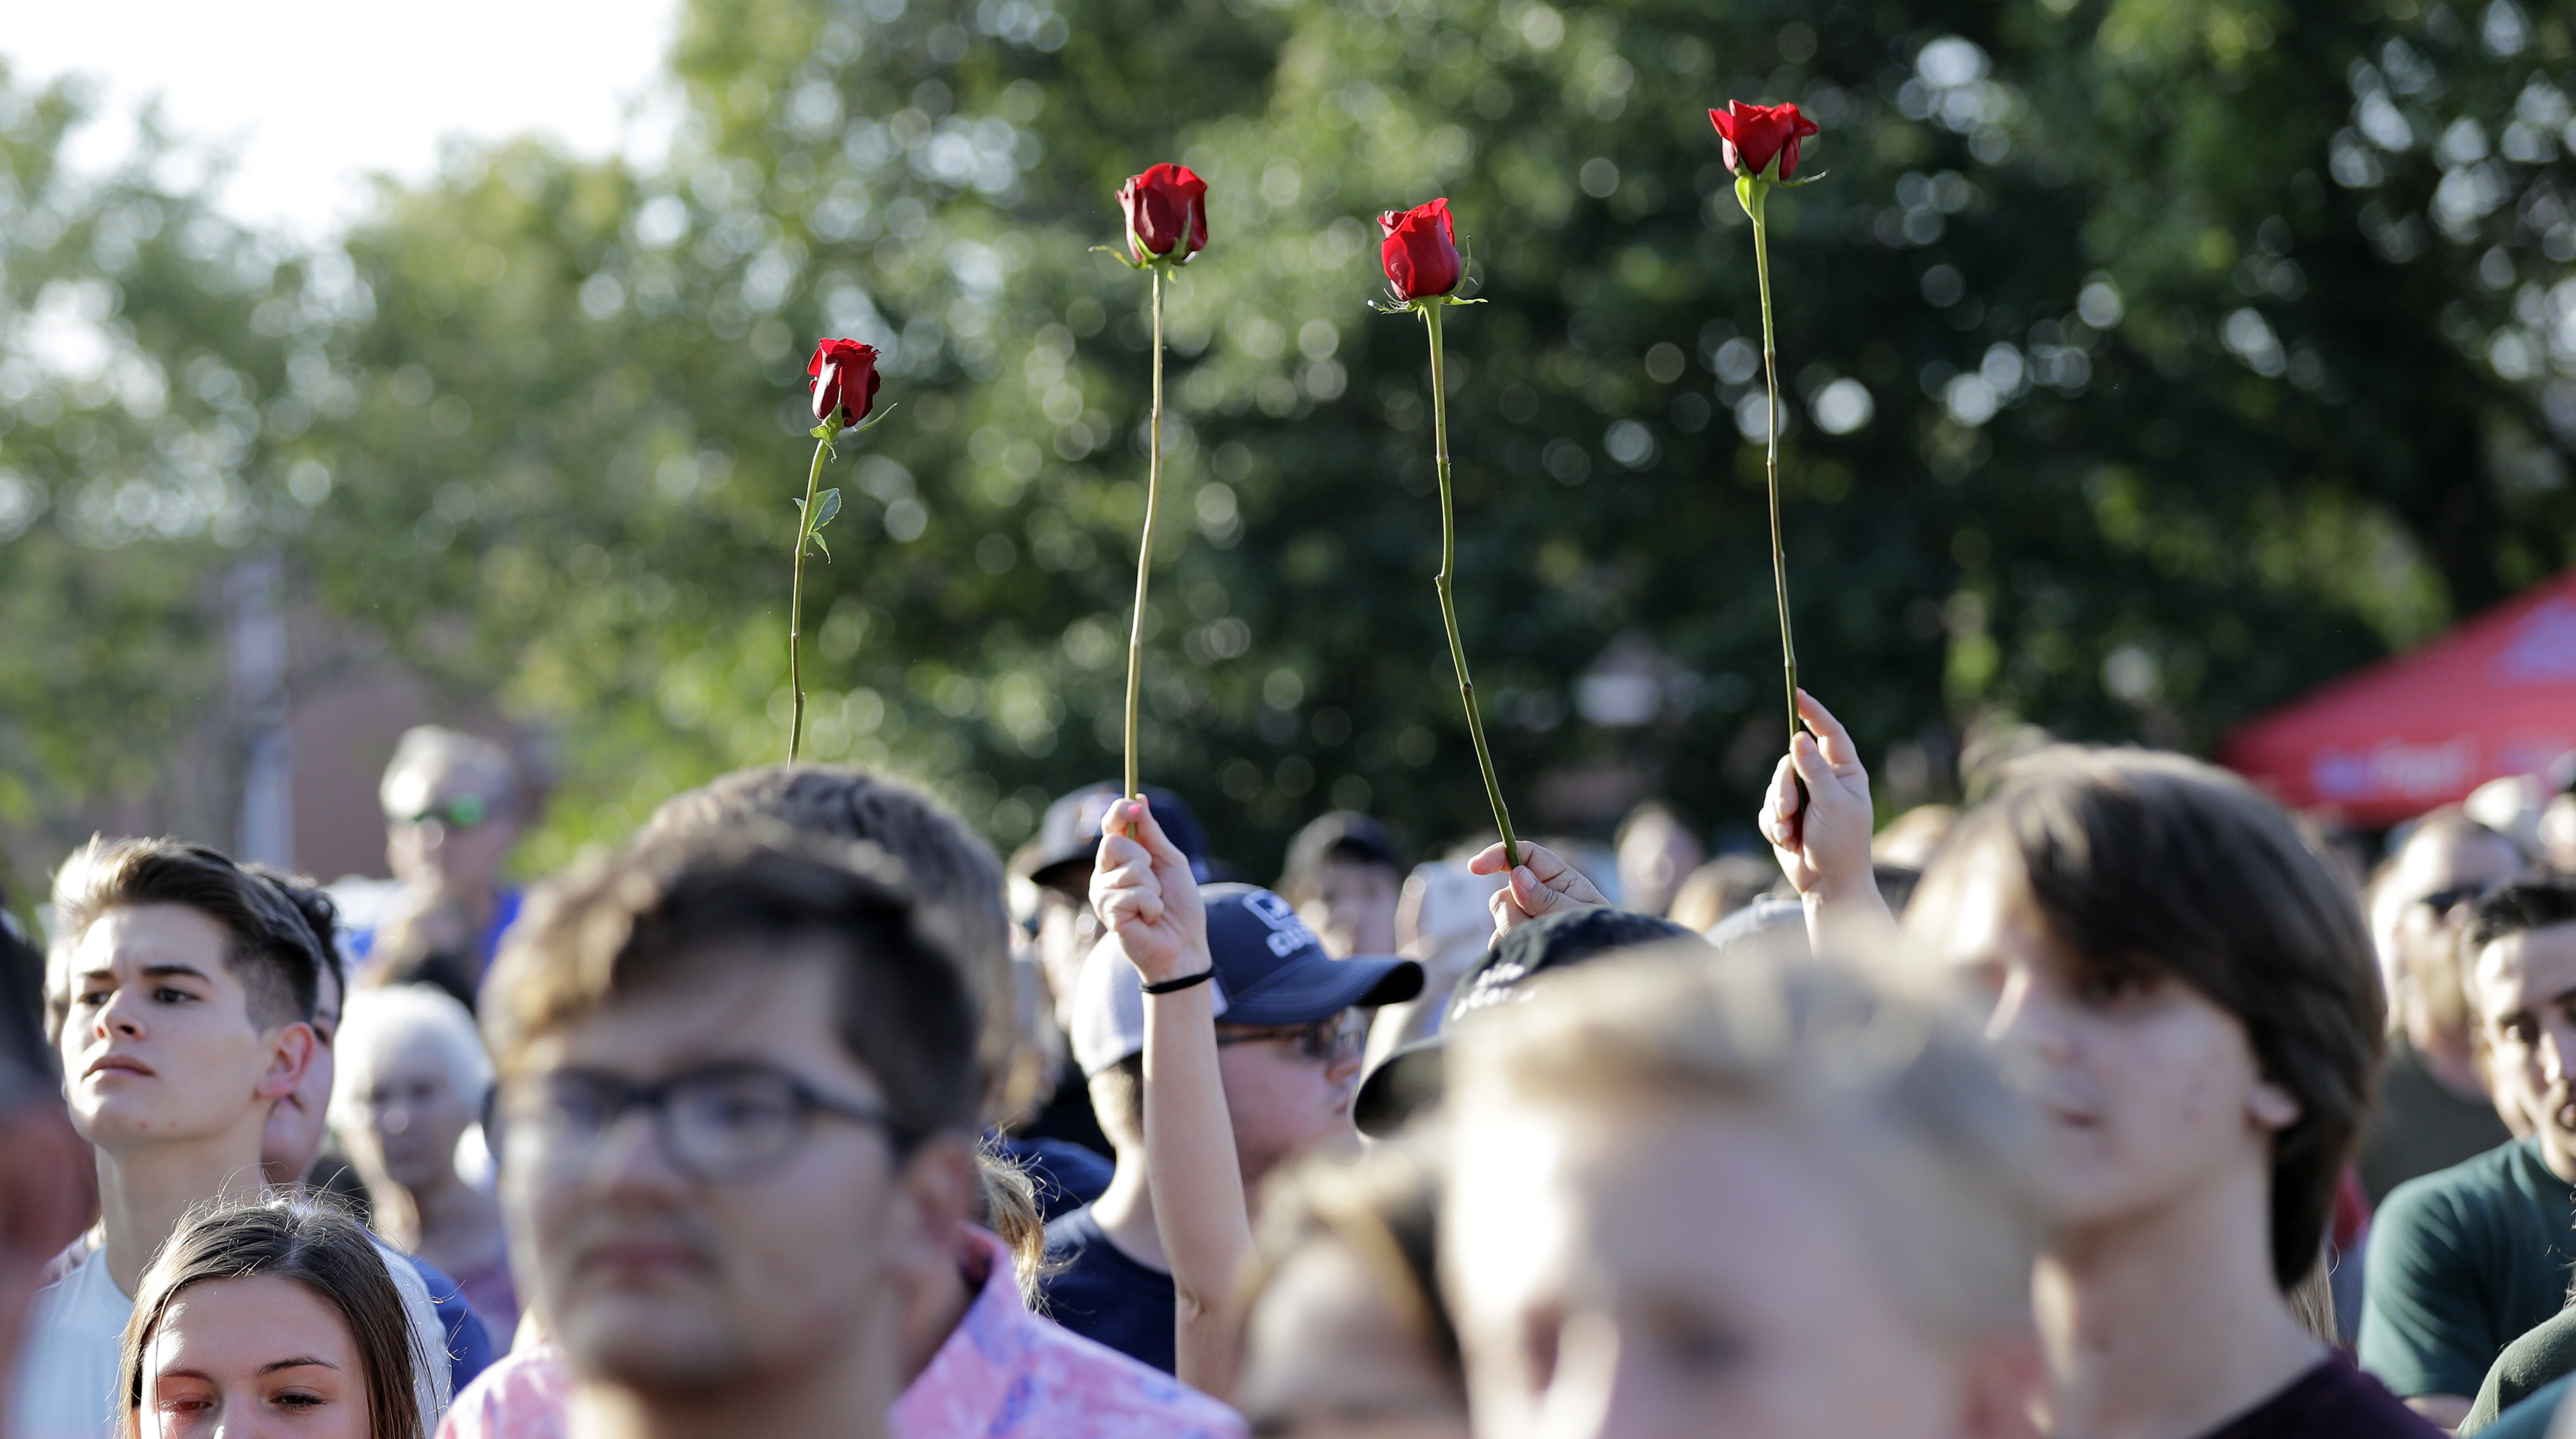 <div class='meta'><div class='origin-logo' data-origin='AP'></div><span class='caption-text' data-credit='AP'>Roses are held up during a prayer vigil following a shooting at Santa Fe High School in Santa Fe, Texas, on Friday, May 18, 2018. (AP Photo/David J. Phillip)</span></div>